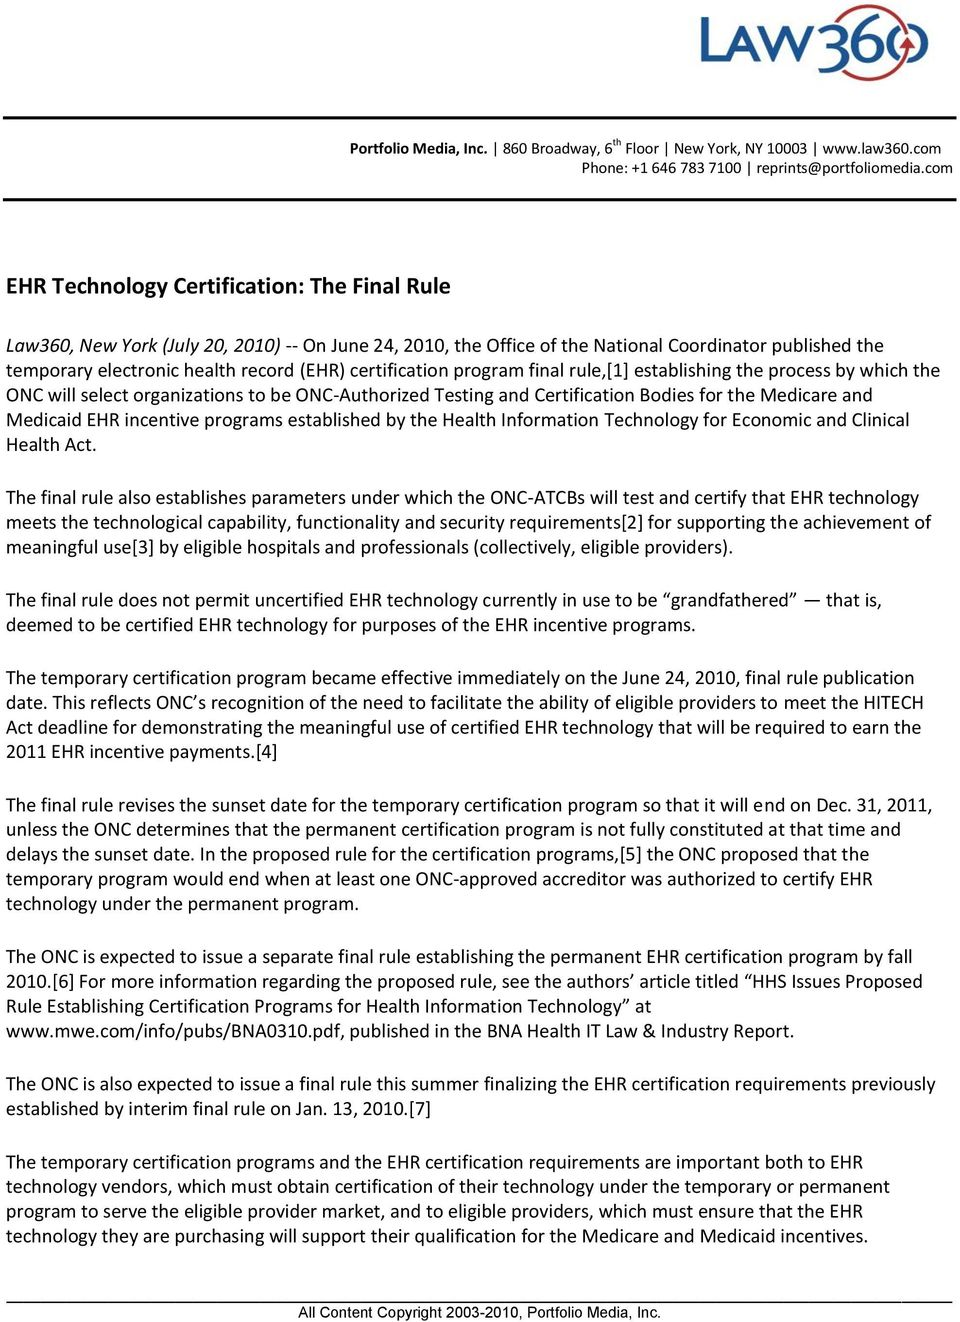 certification program final rule,[1] establishing the process by which the ONC will select organizations to be ONC-Authorized Testing and Certification Bodies for the Medicare and Medicaid EHR